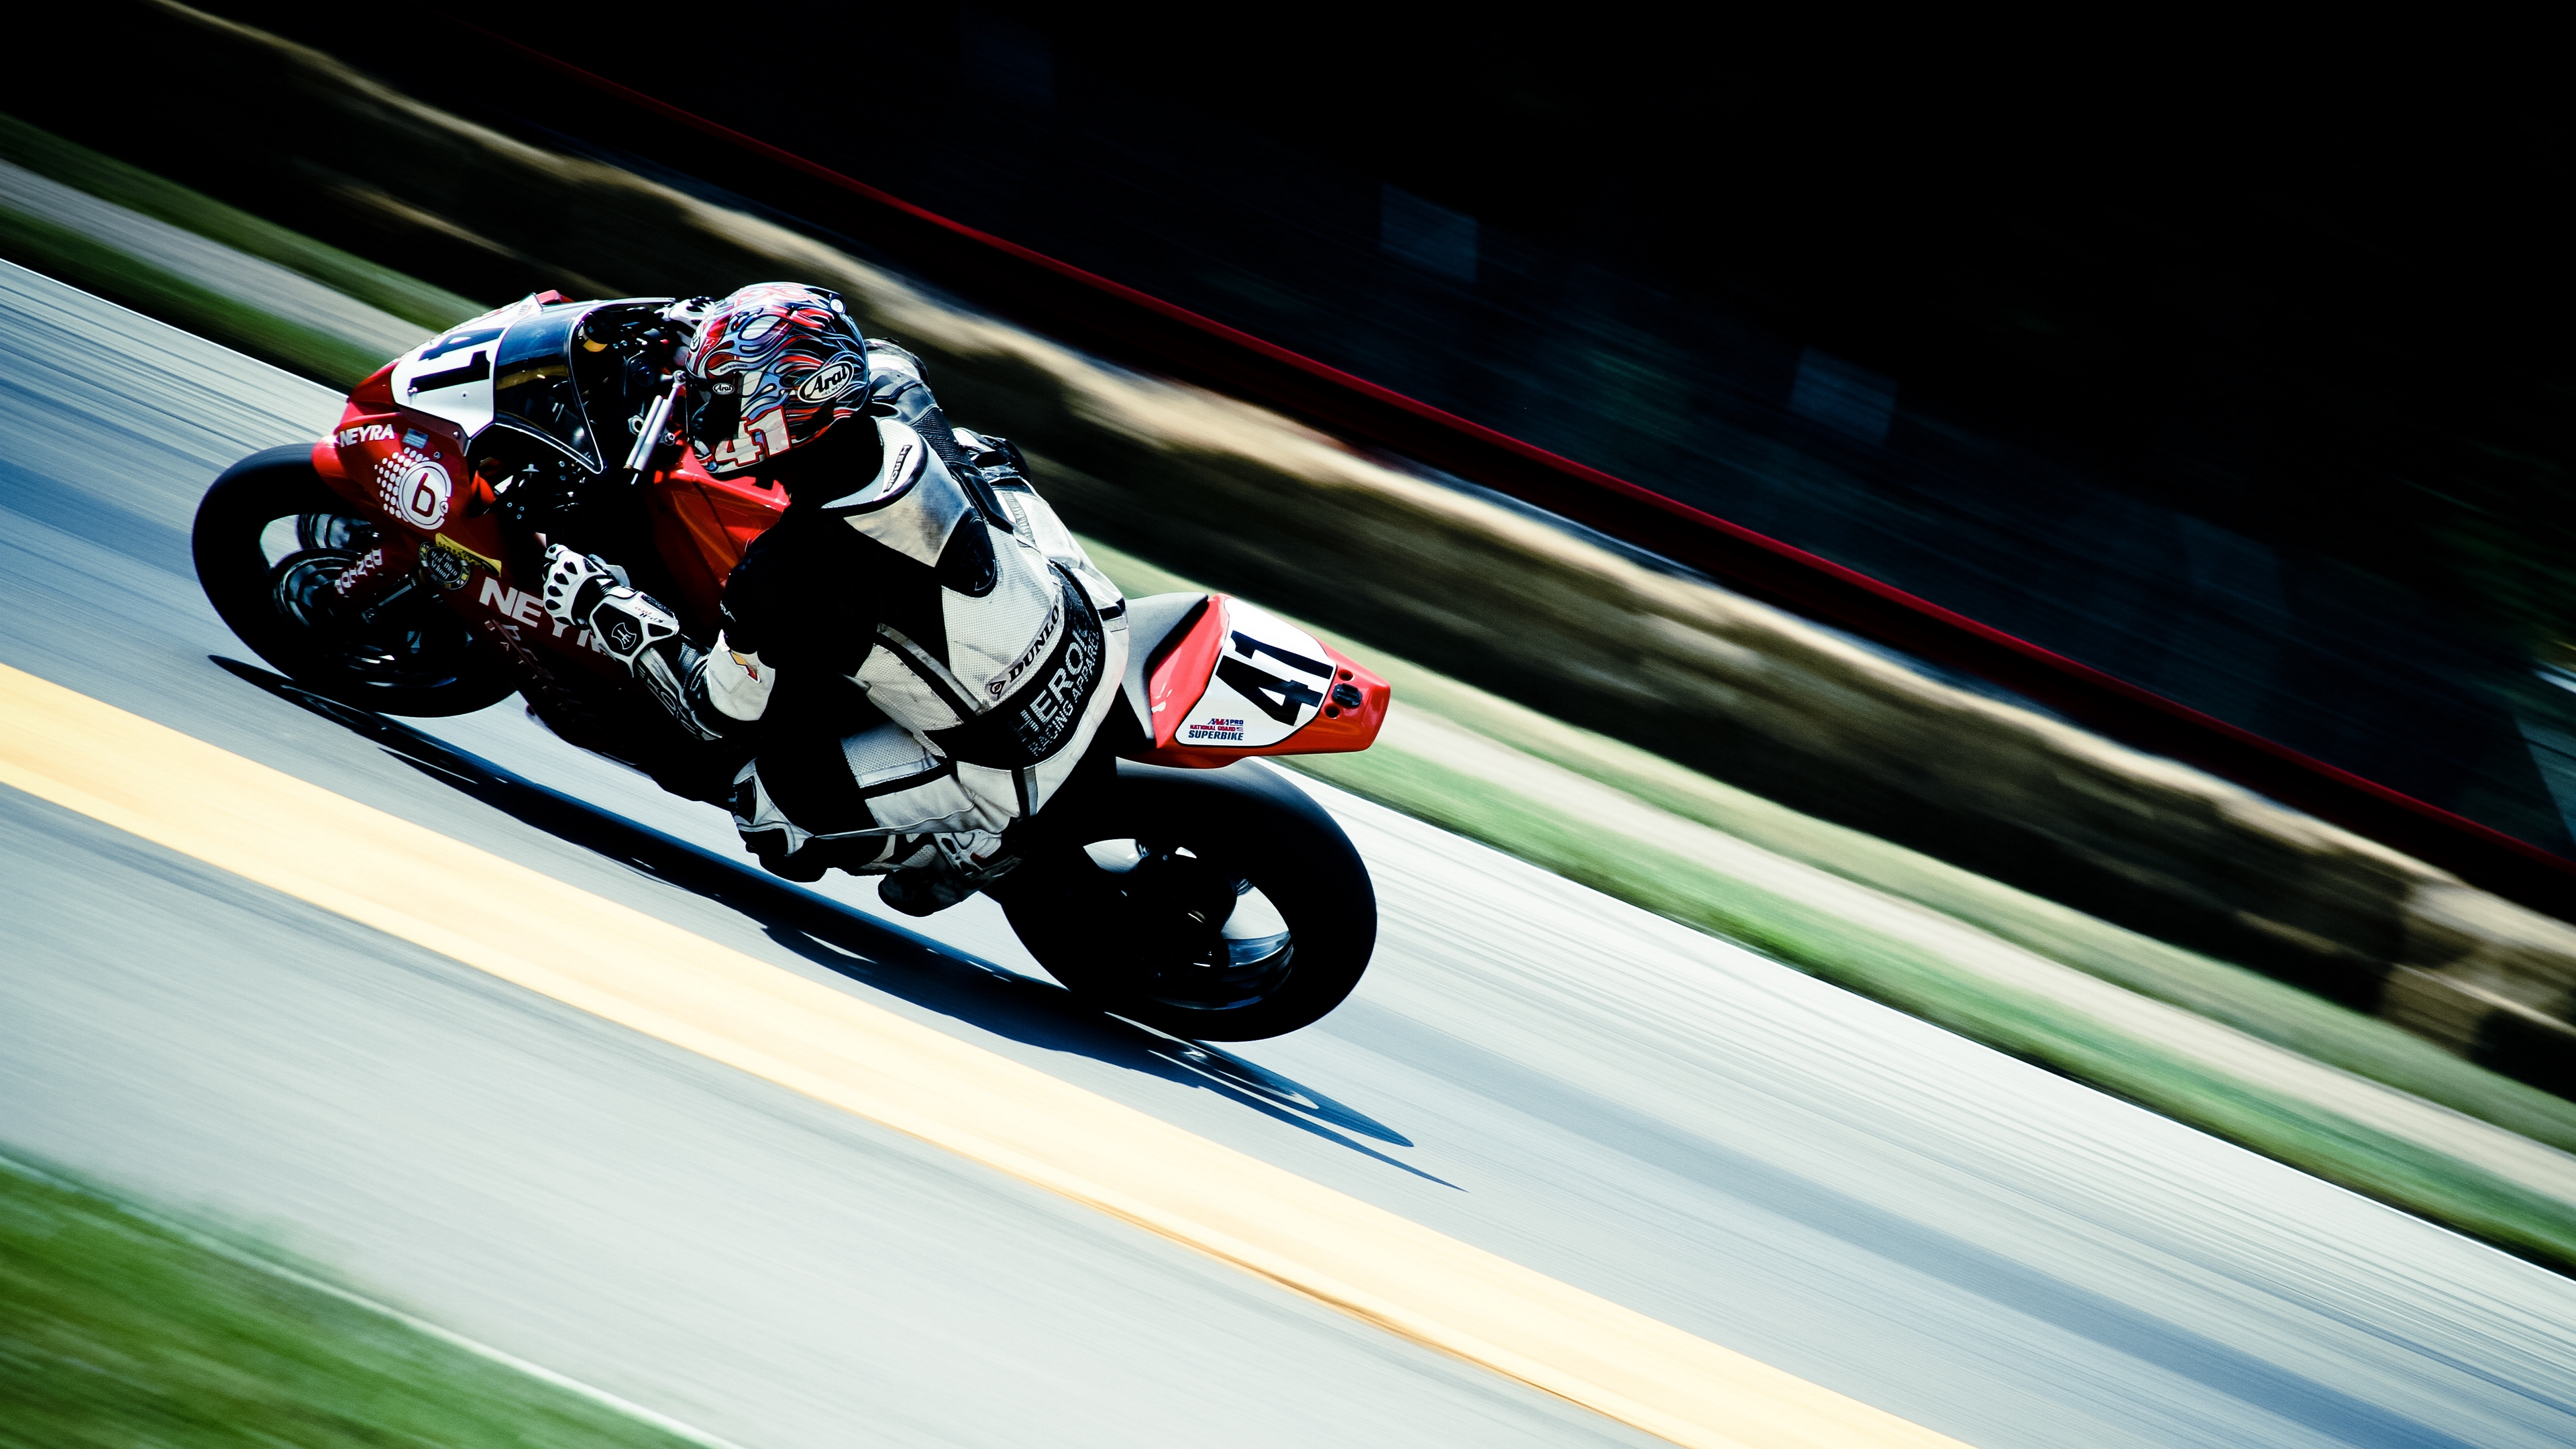 motorcyclist motorsport movement outfit 4k 1536018888 - motorcyclist, motorsport, movement, outfit 4k - movement, Motorsport, motorcyclist